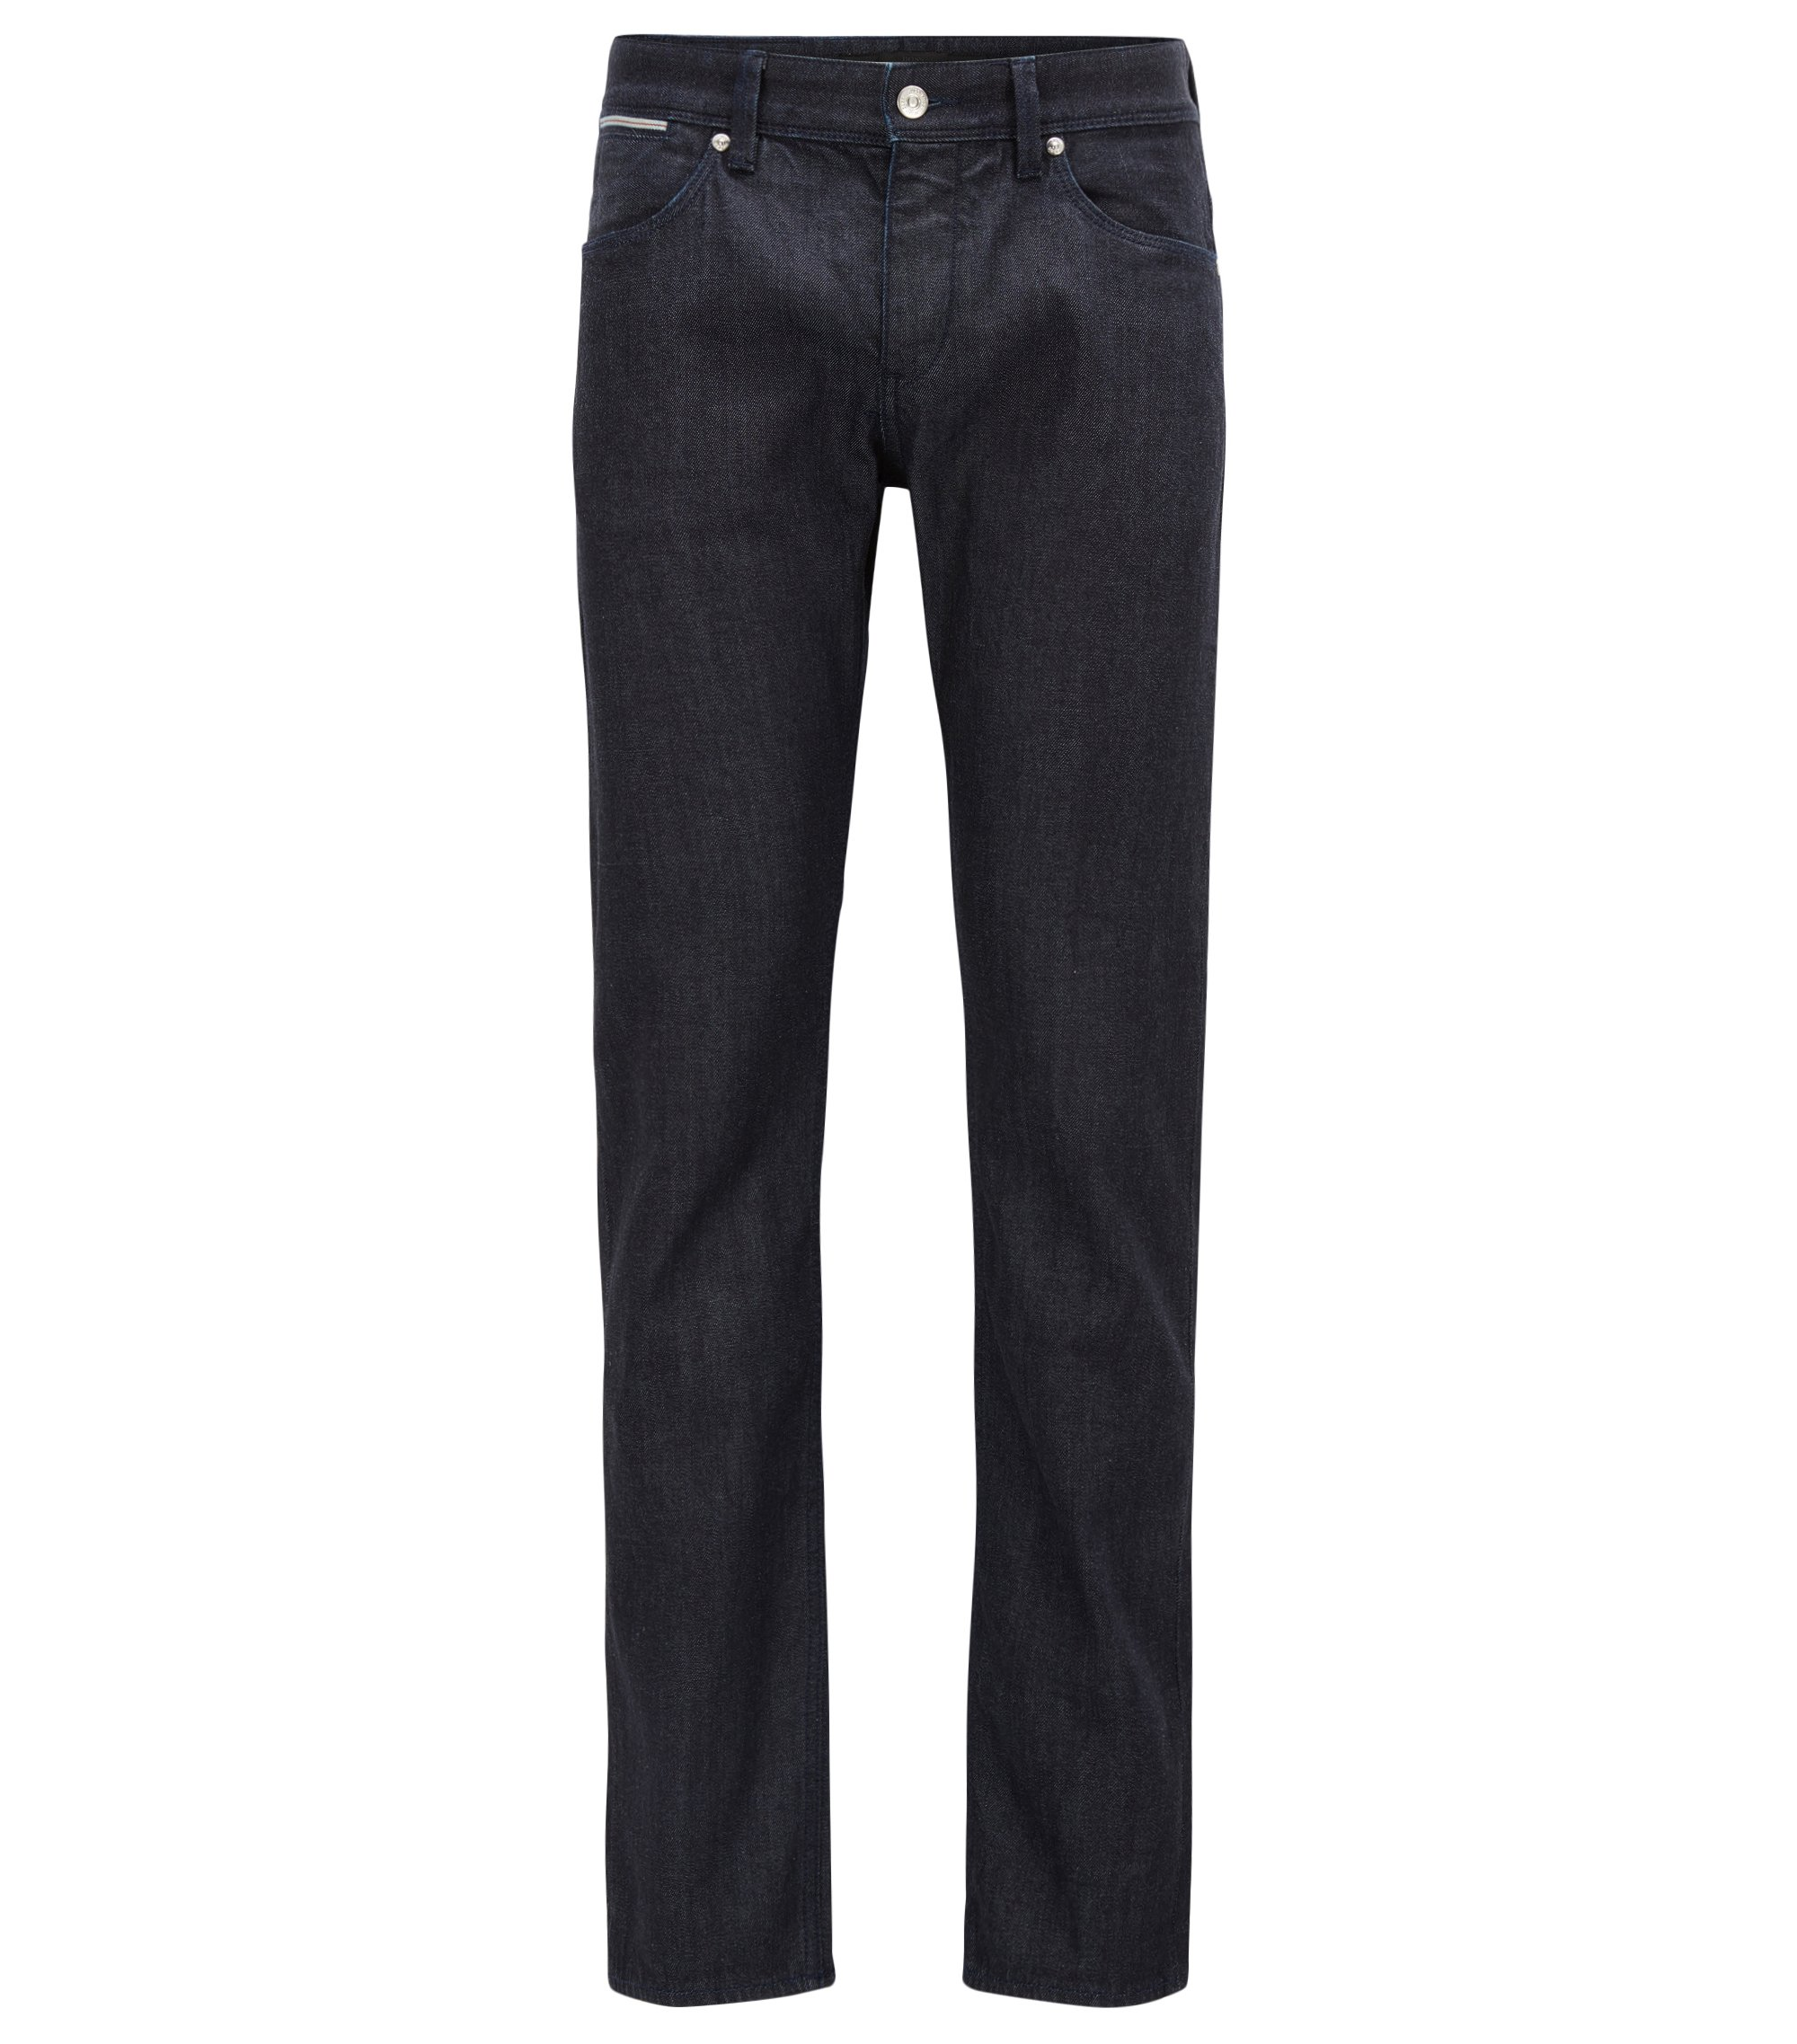 Jeans Slim Fit en denim selvedge stretch, Bleu foncé